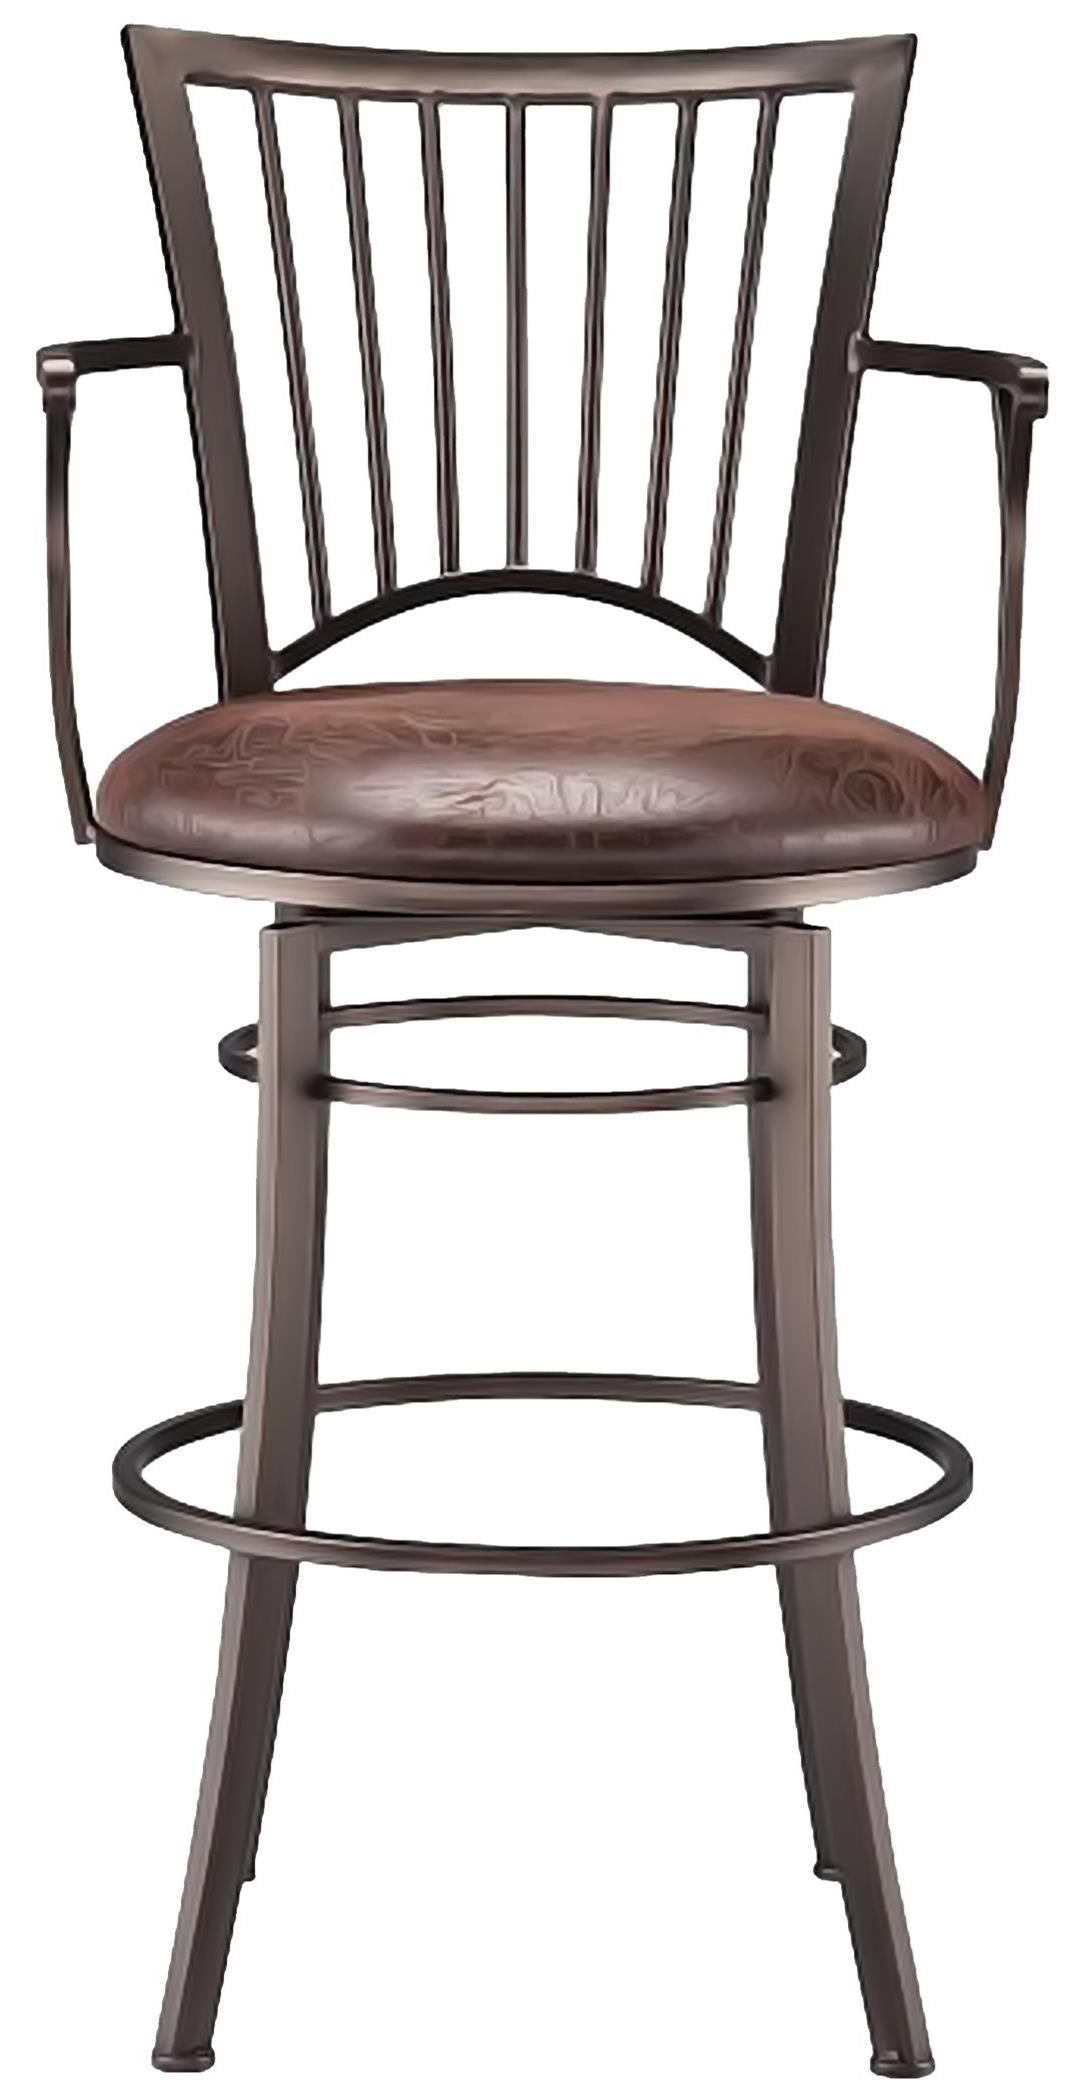 CYM Furniture Bar Stools Accent Morgan Swivel Counter Stool